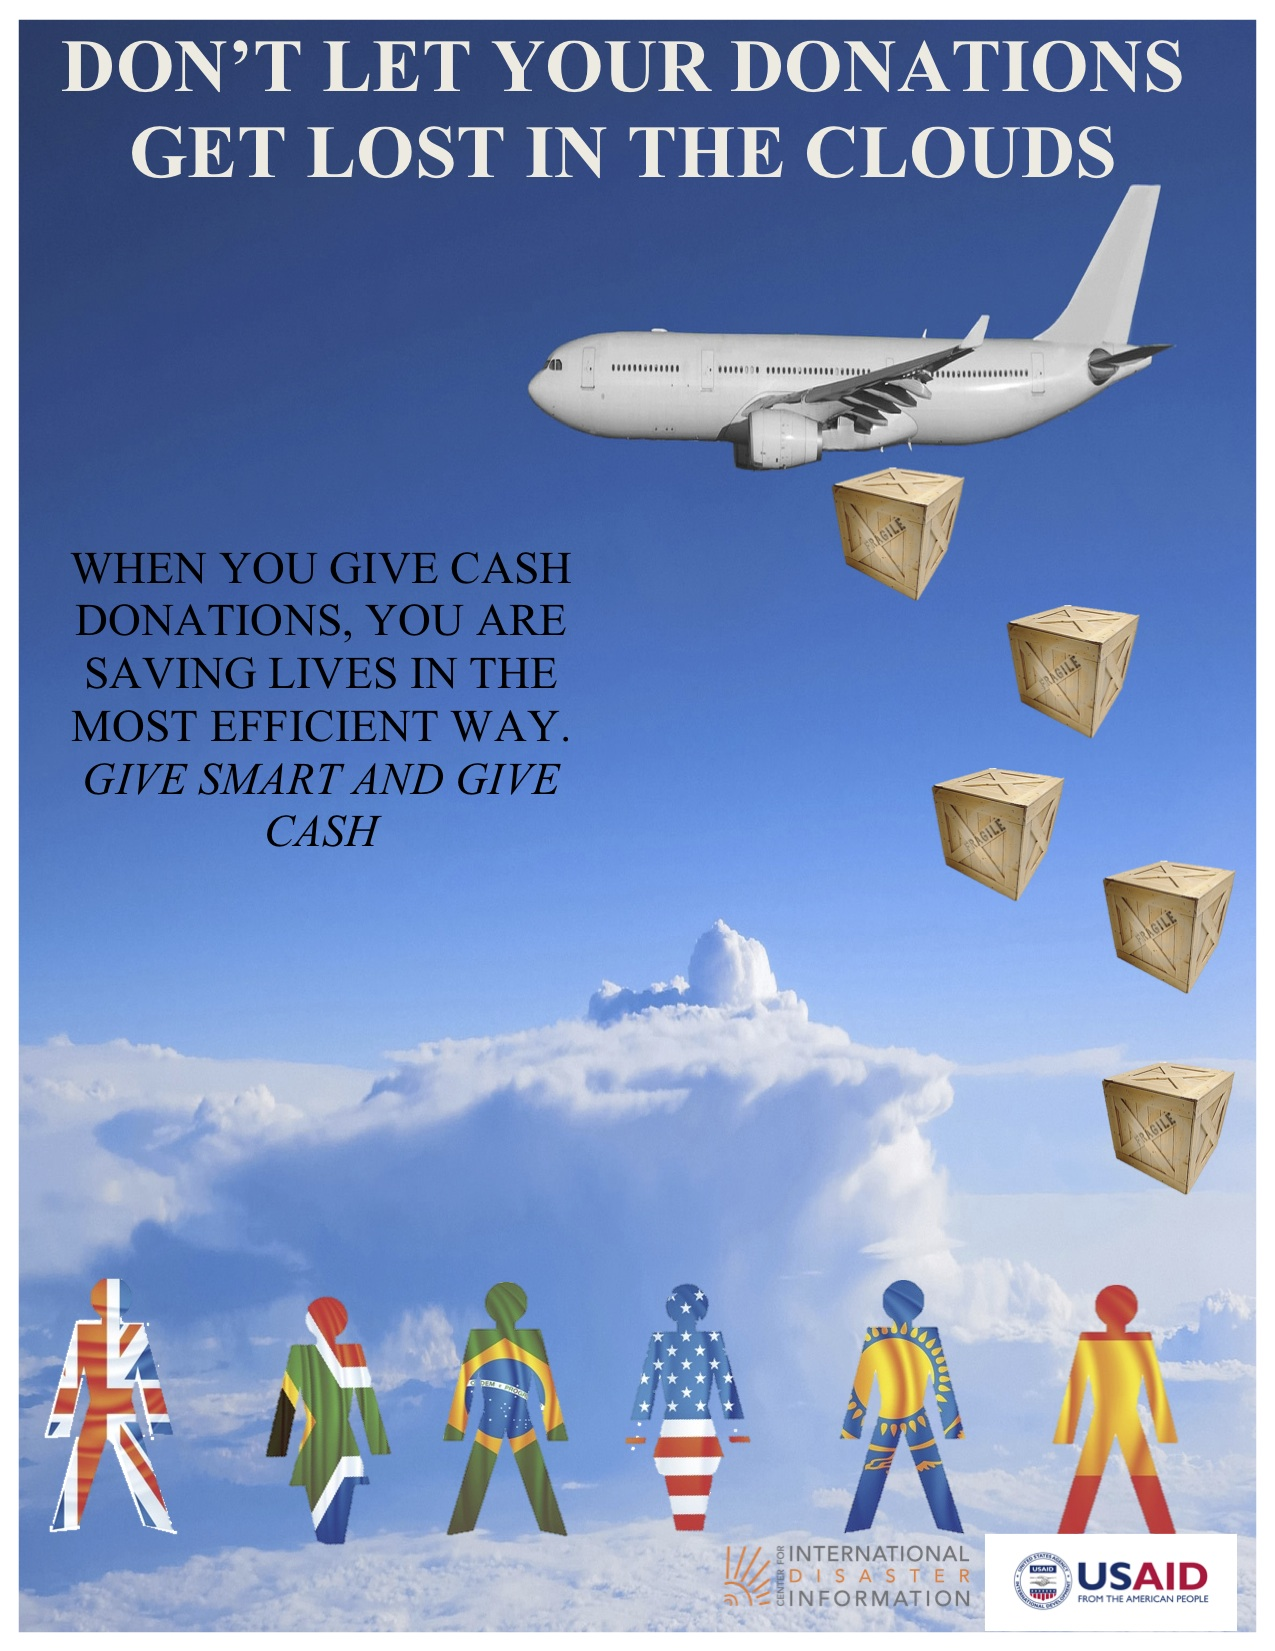 Don't Let Your Donations Get Lost in the Clouds